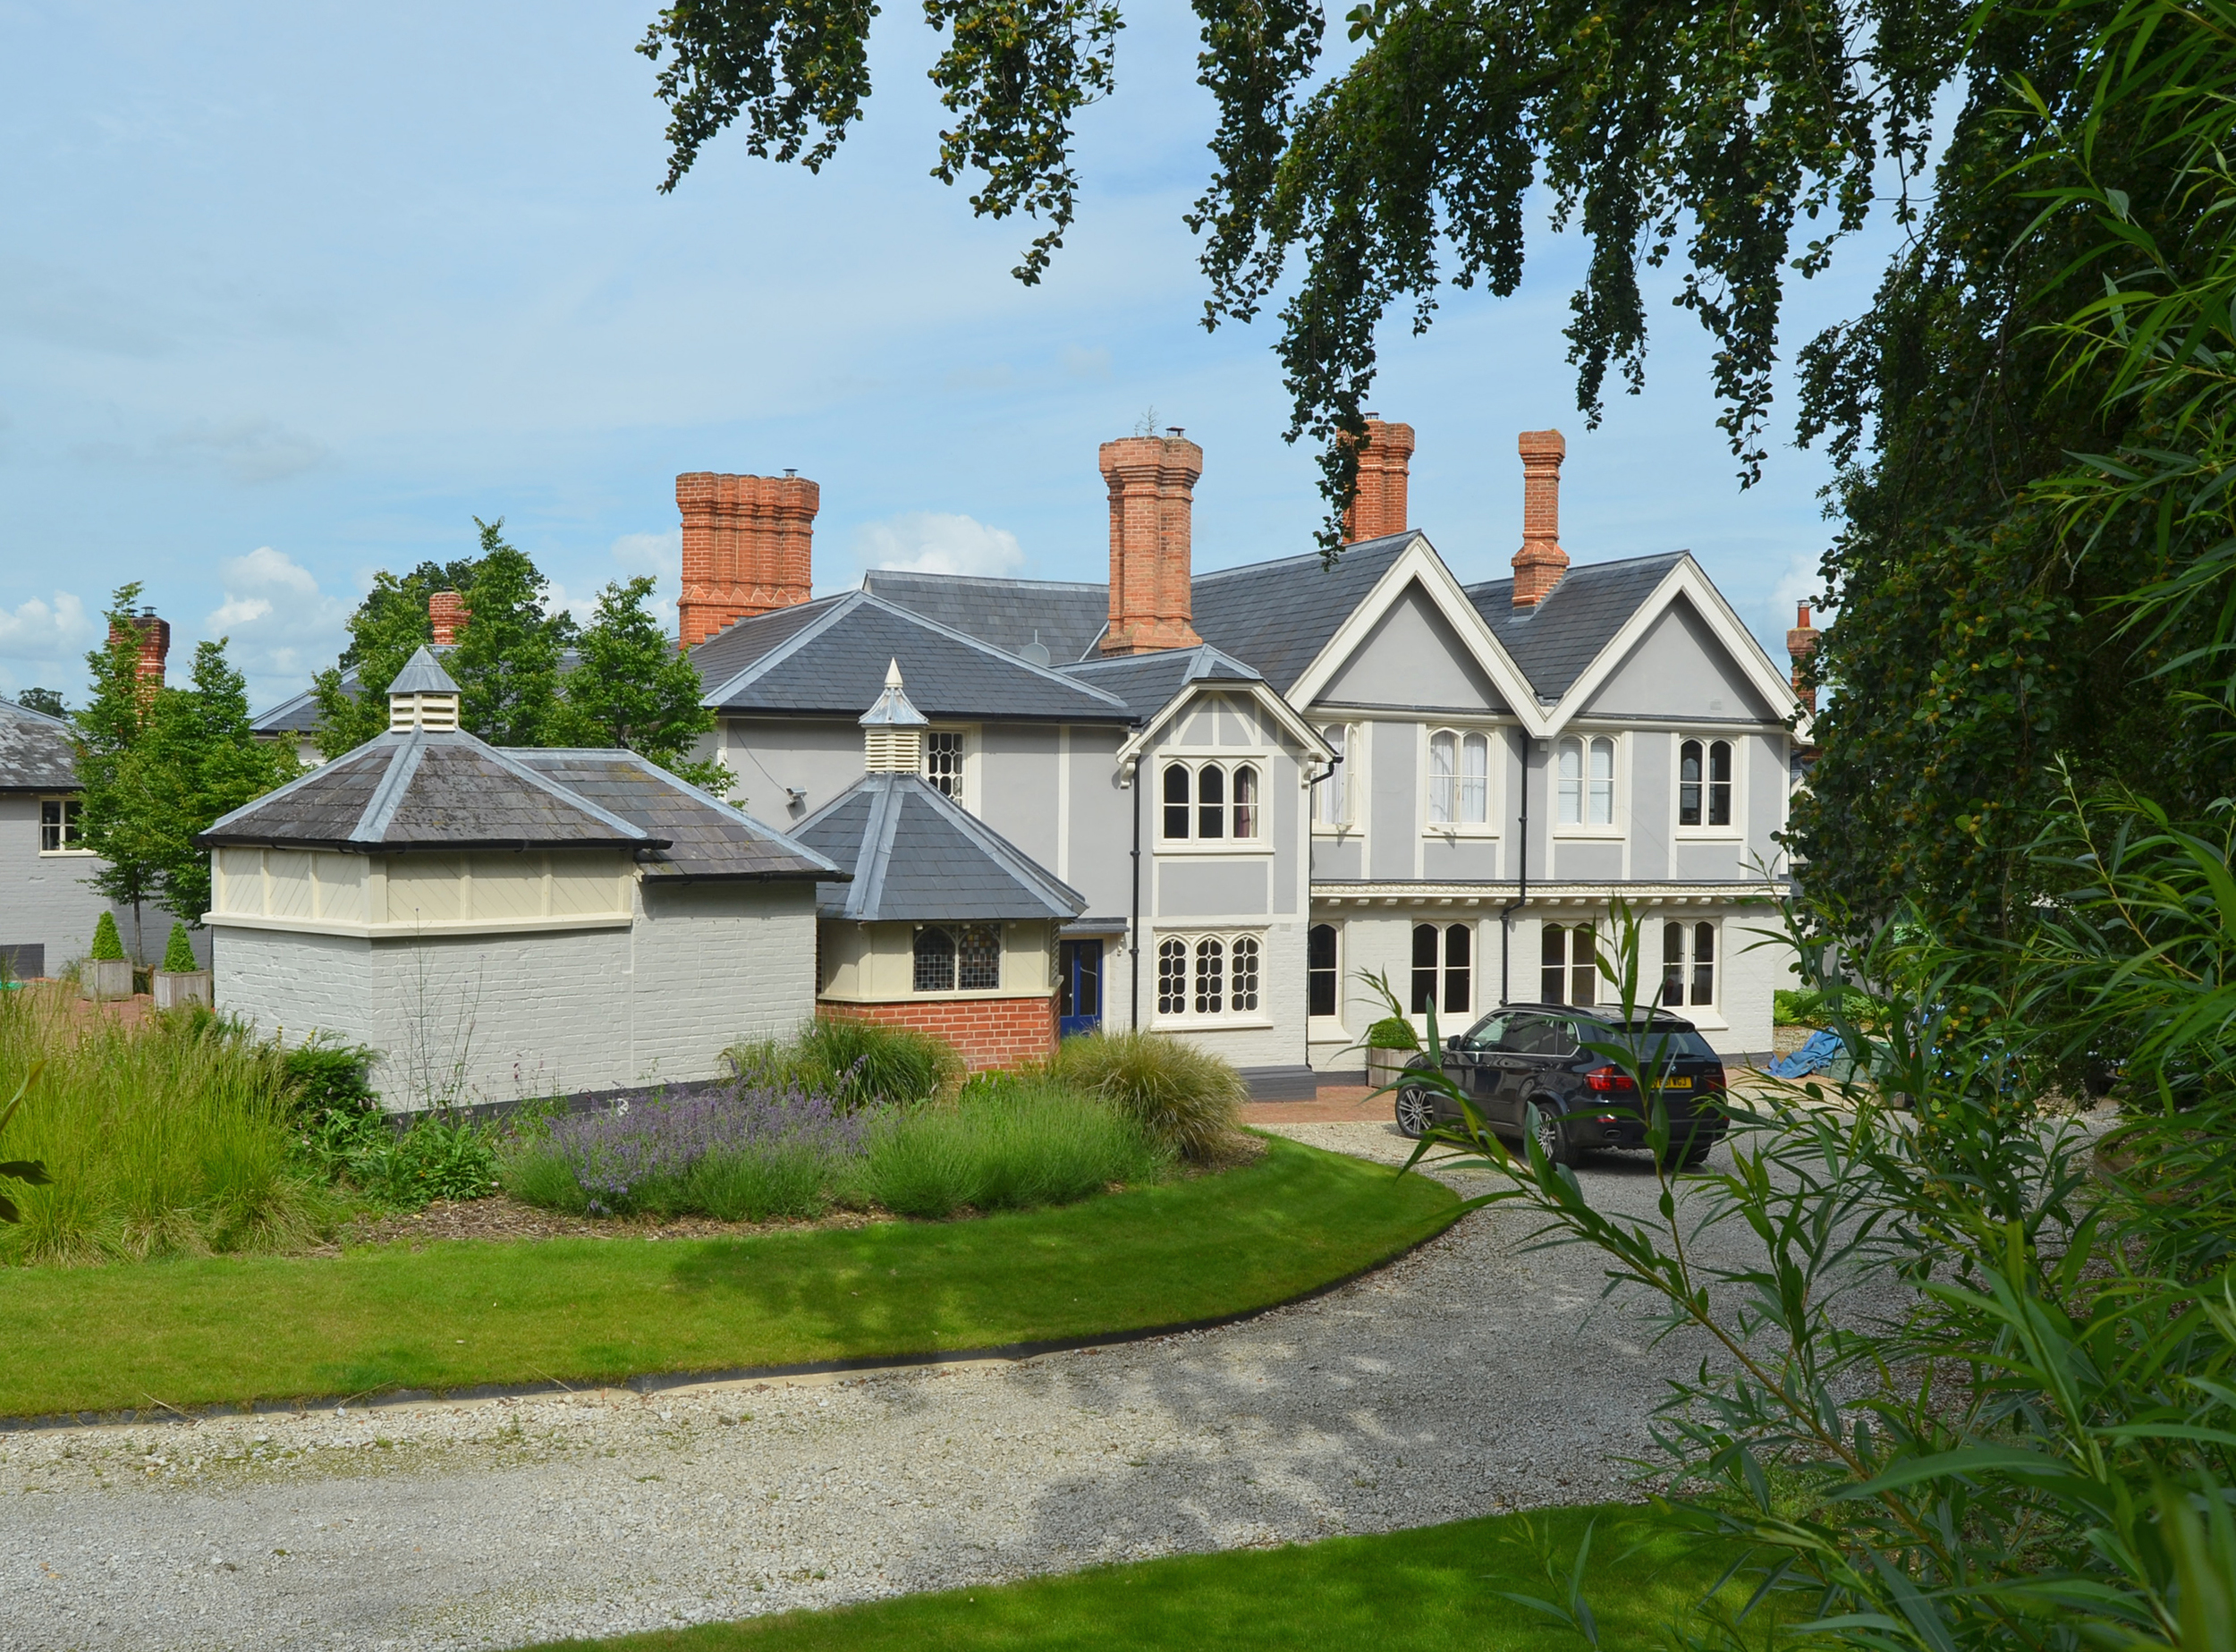 Extensive landscaping works were undertaken to enhance the setting of the listed building.